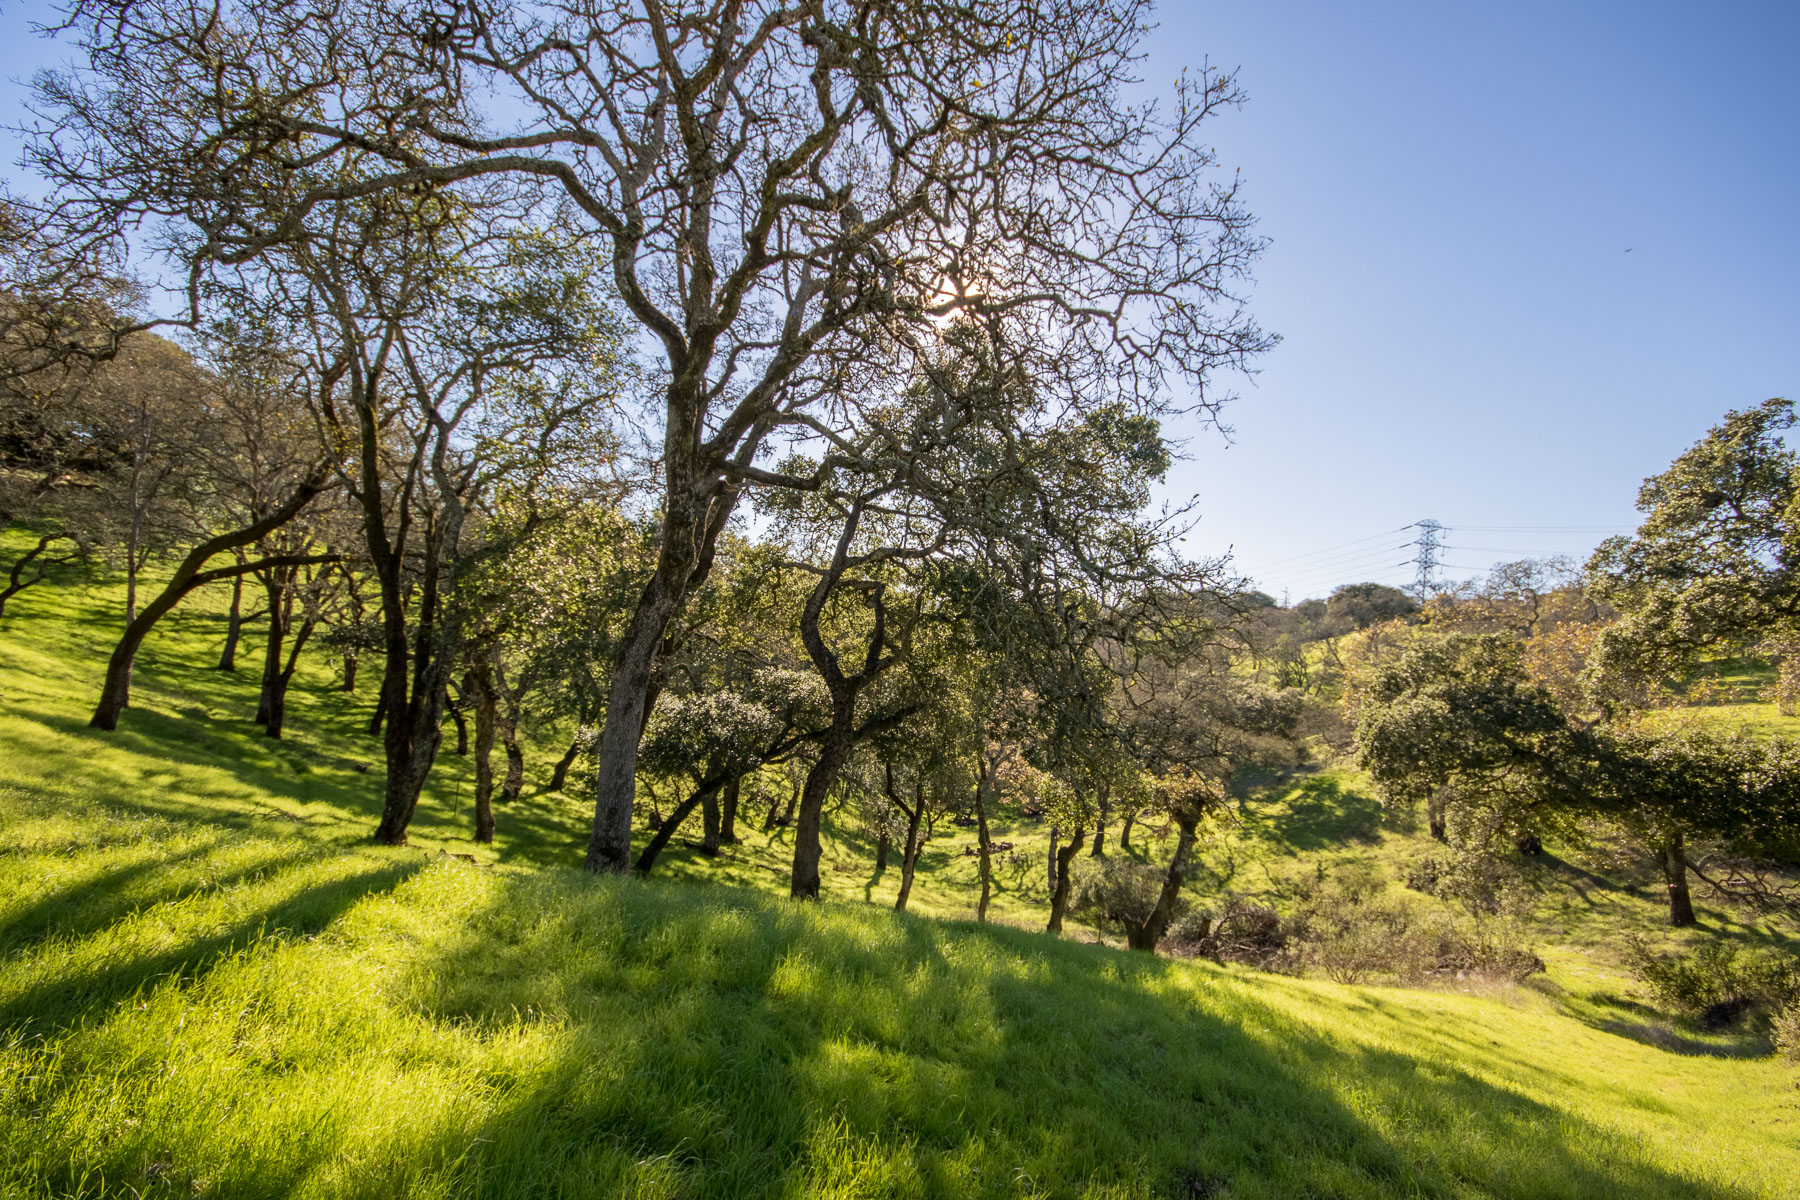 Land for Sale at Vacant Lot in Greenpoint APN 143-370-41 Novato, California 94949 United States